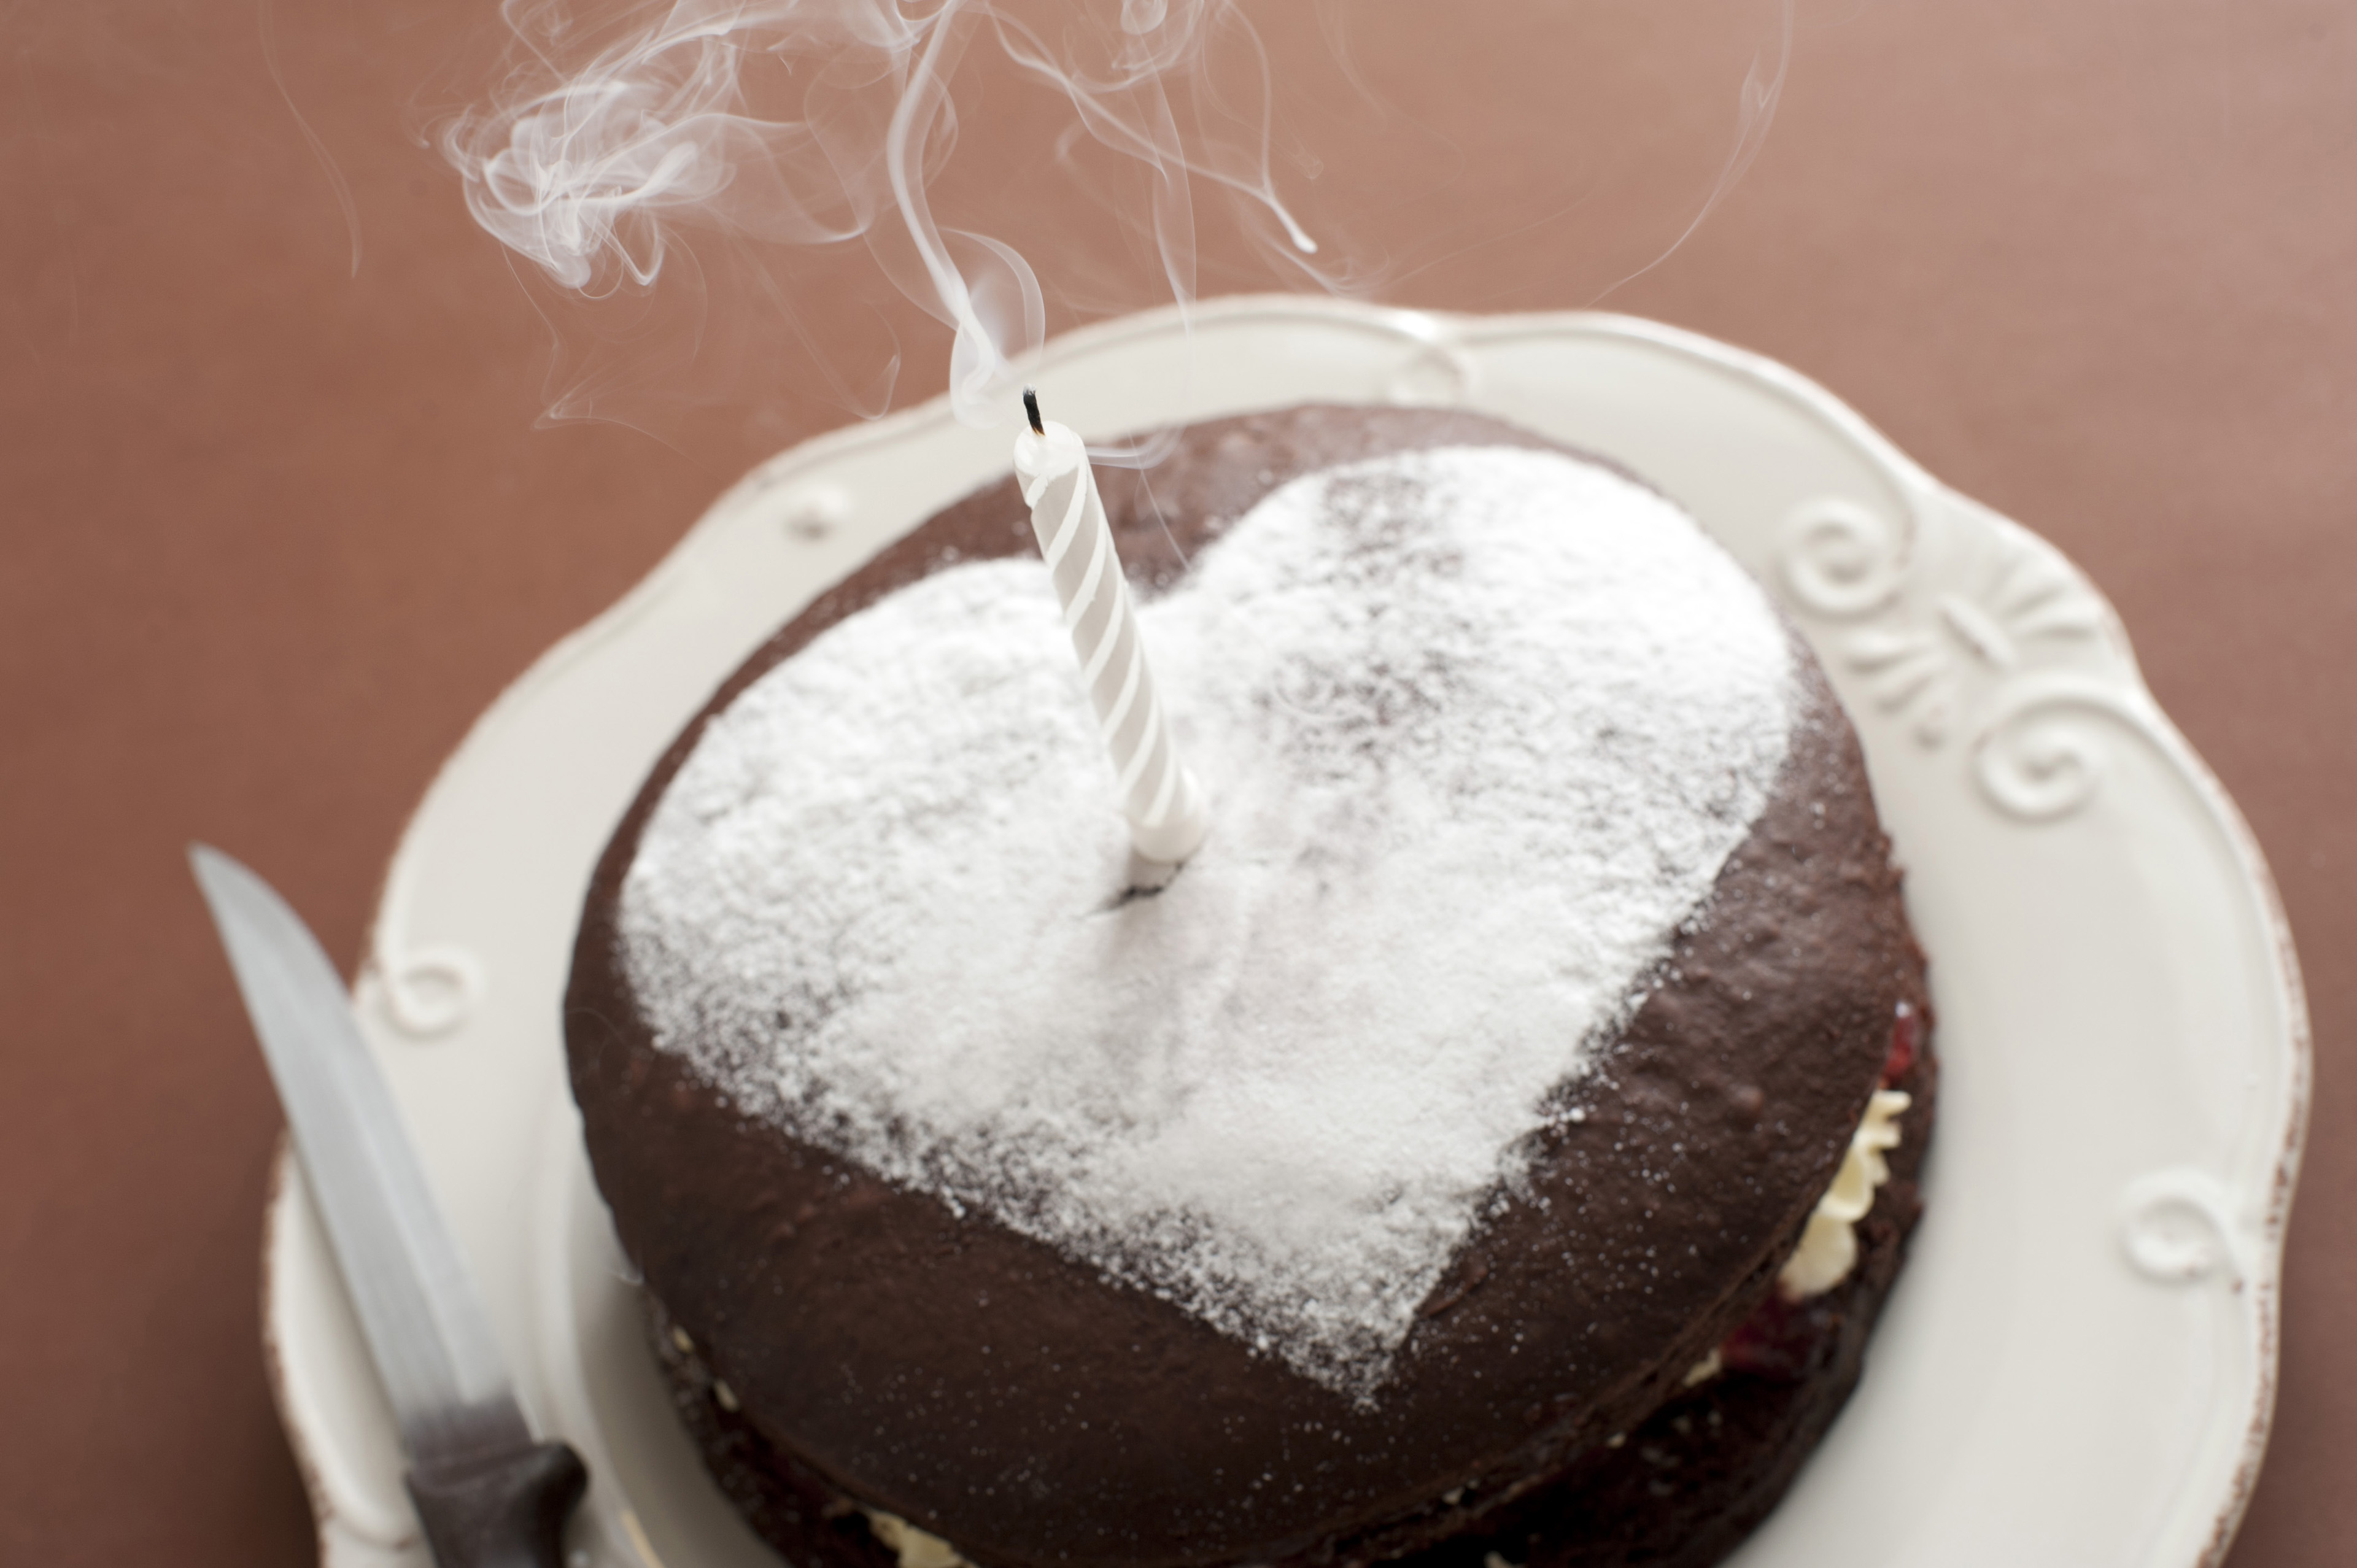 A chocolate birthday cake for a loved one with a white icing sugar heart shape on top and a single extinguished candle